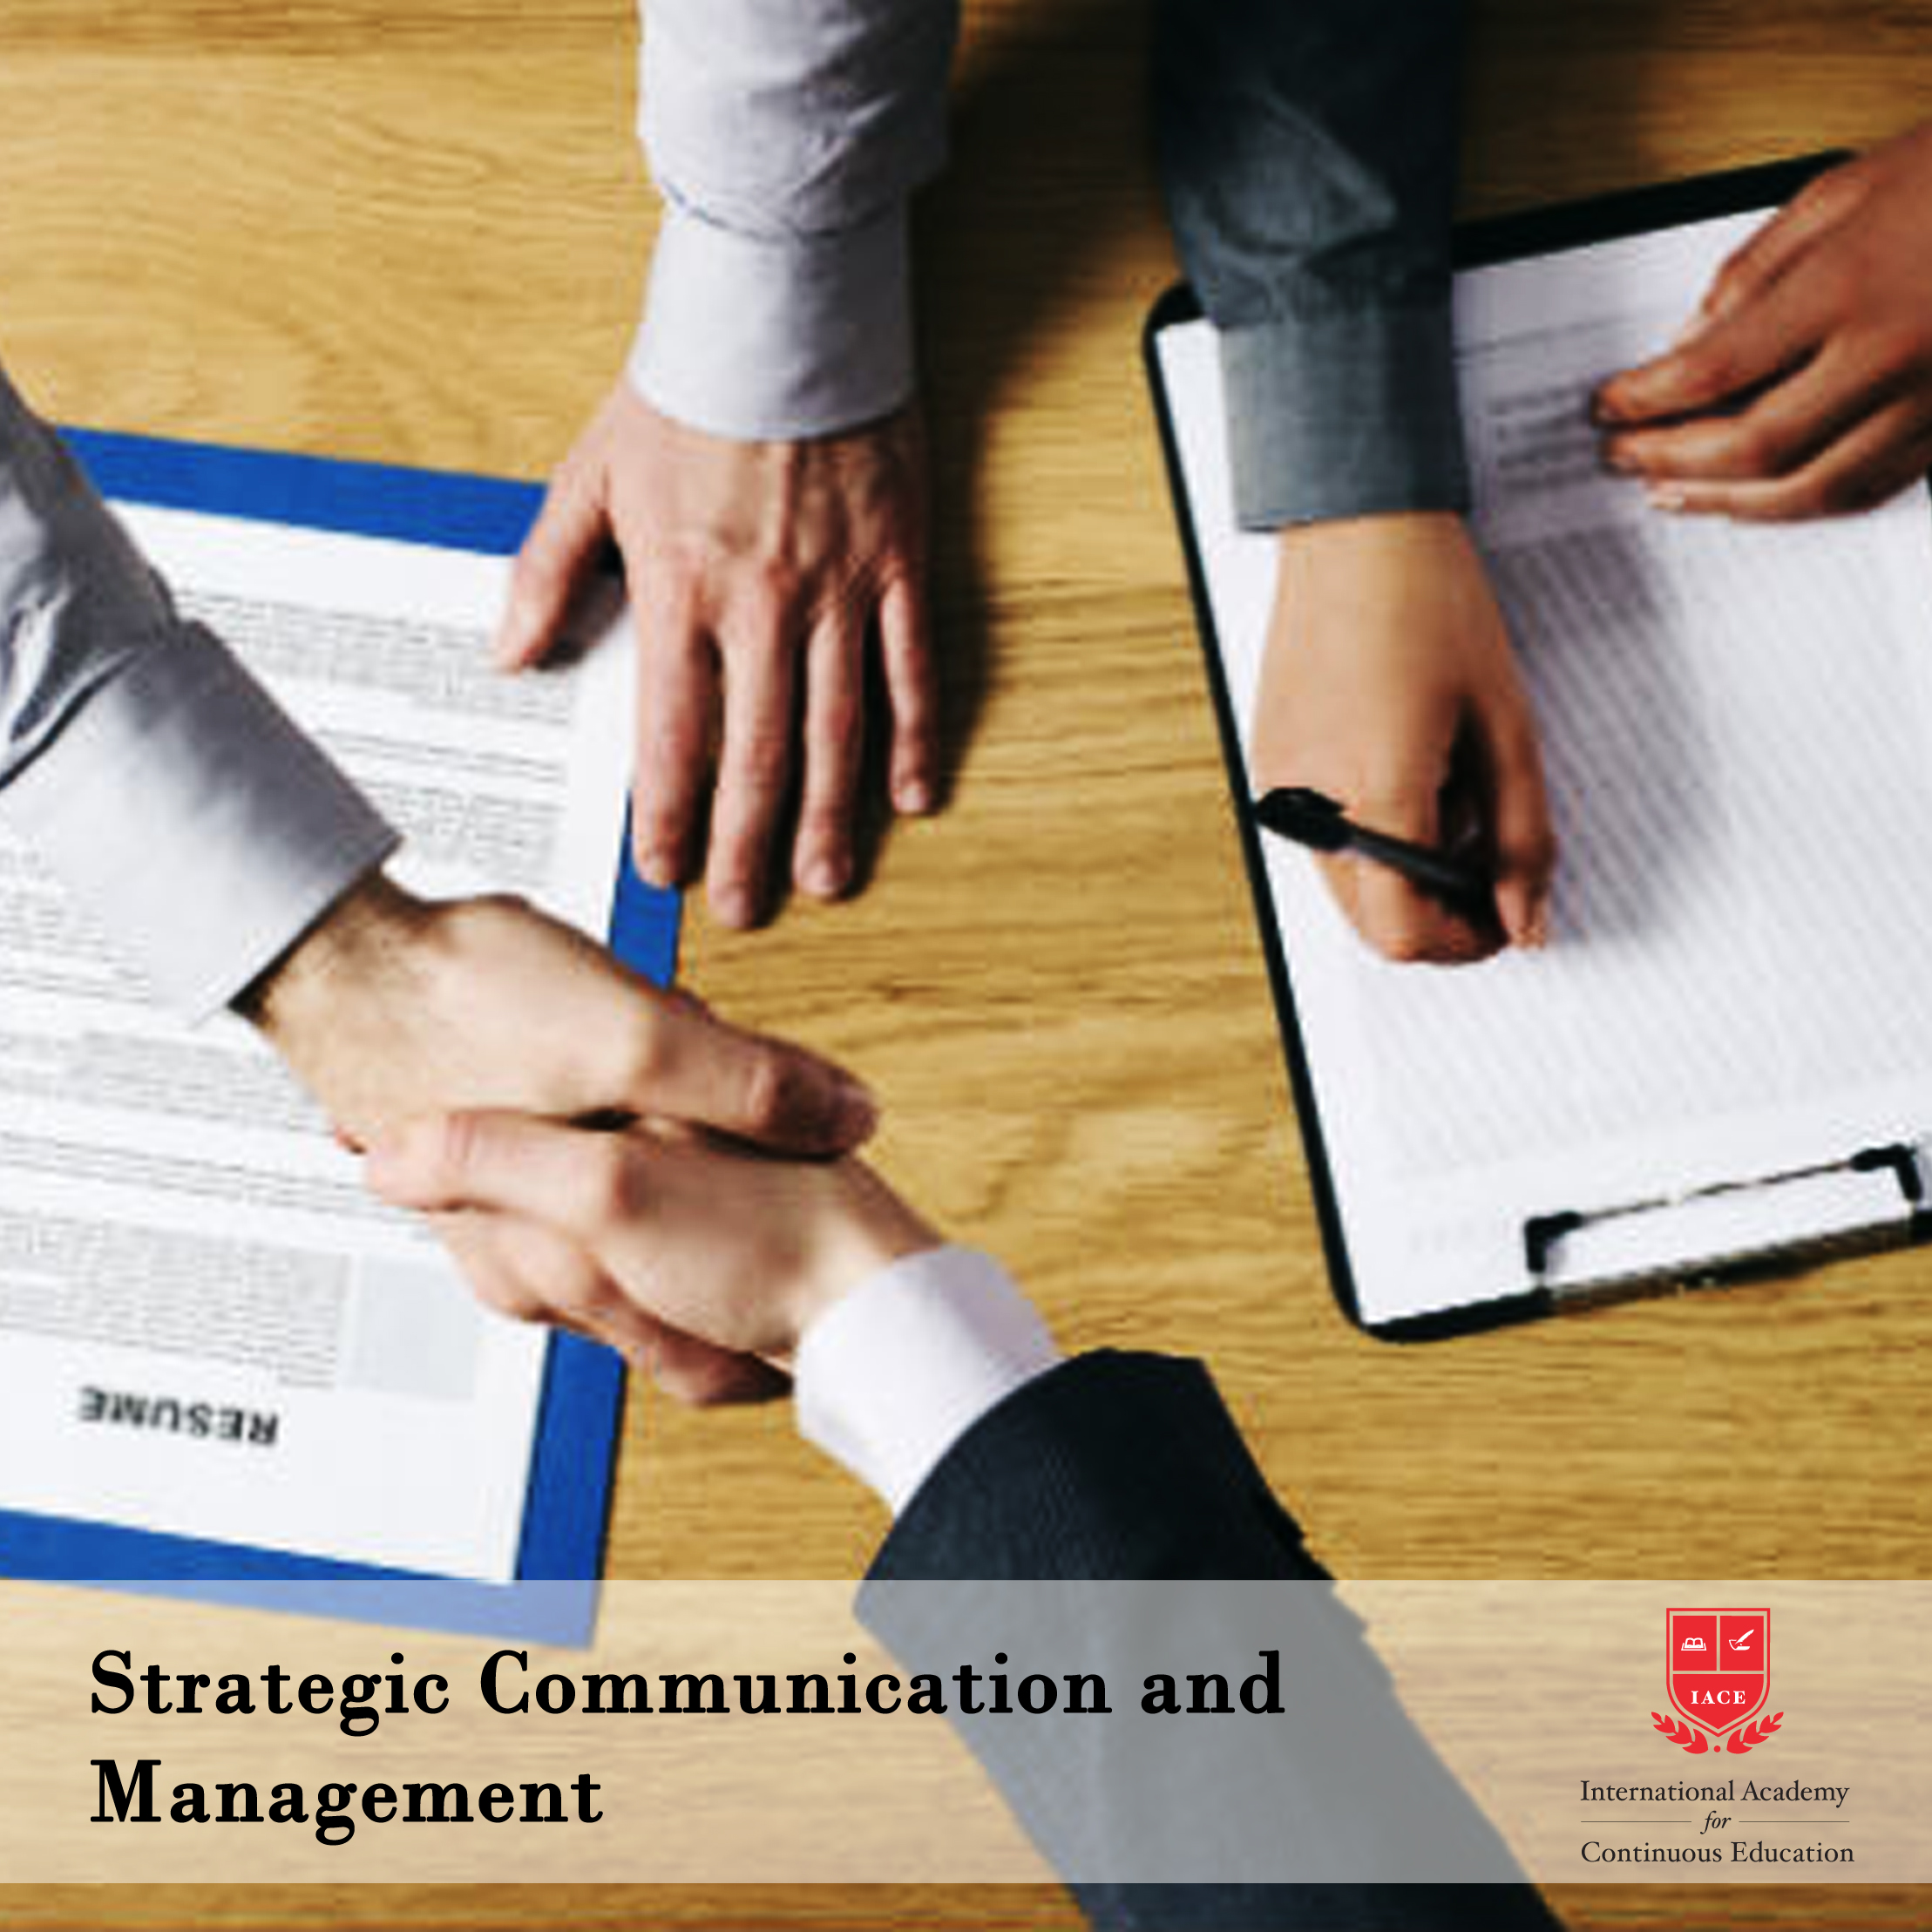 strategic management course description 1 course syllabus: strategic management winter 2018 january 13, february 10, march 24, april 21, 2018 saturdays 9am - 4pm tyndale university college & seminary 3377 bayview avenue, toronto, ontario facilitators: karl mueller, suzie said, albert anderman, lorinda lee course description we live in a.